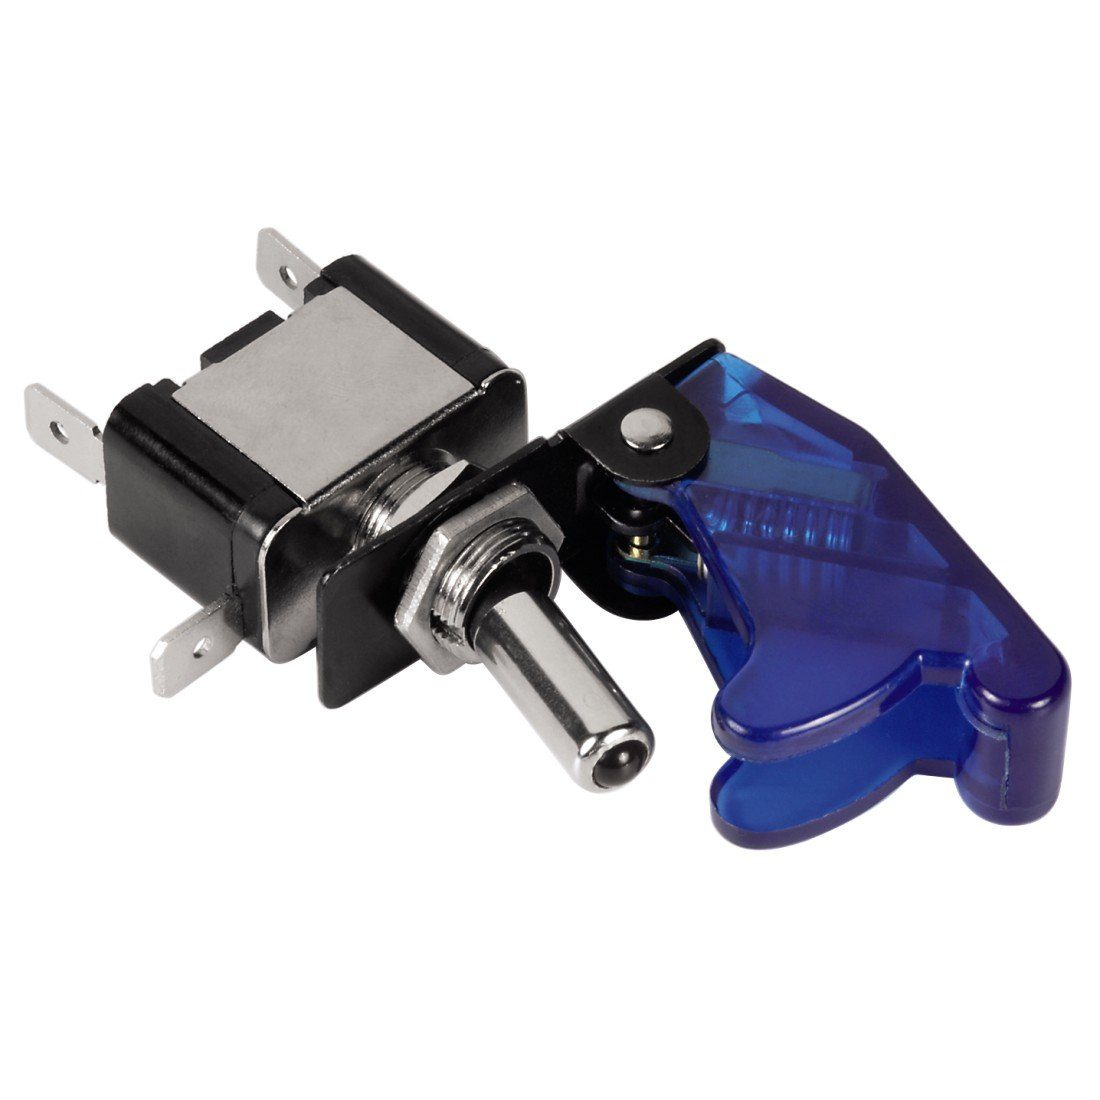 Hama Kfz-Schalter Ignition Switch, mit LED, Transparent/Blau